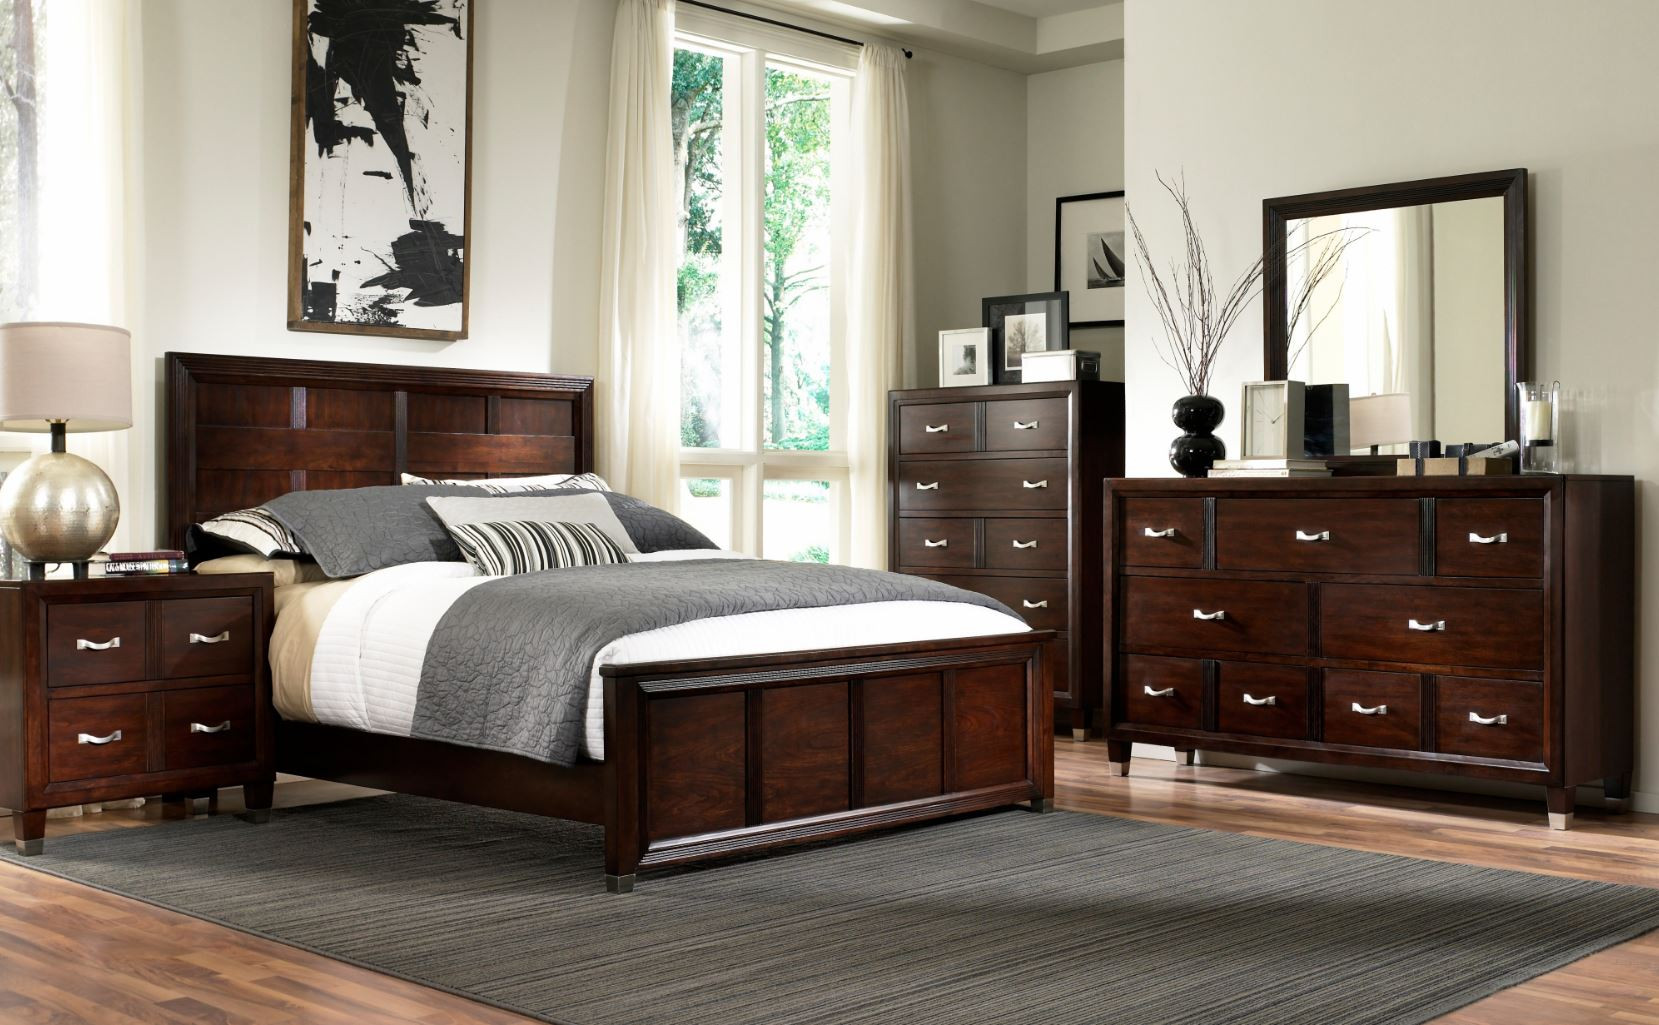 Best ideas about Broyhill Bedroom Set . Save or Pin Broyhill Furniture Quality Craftsmanship & Remarkable Now.